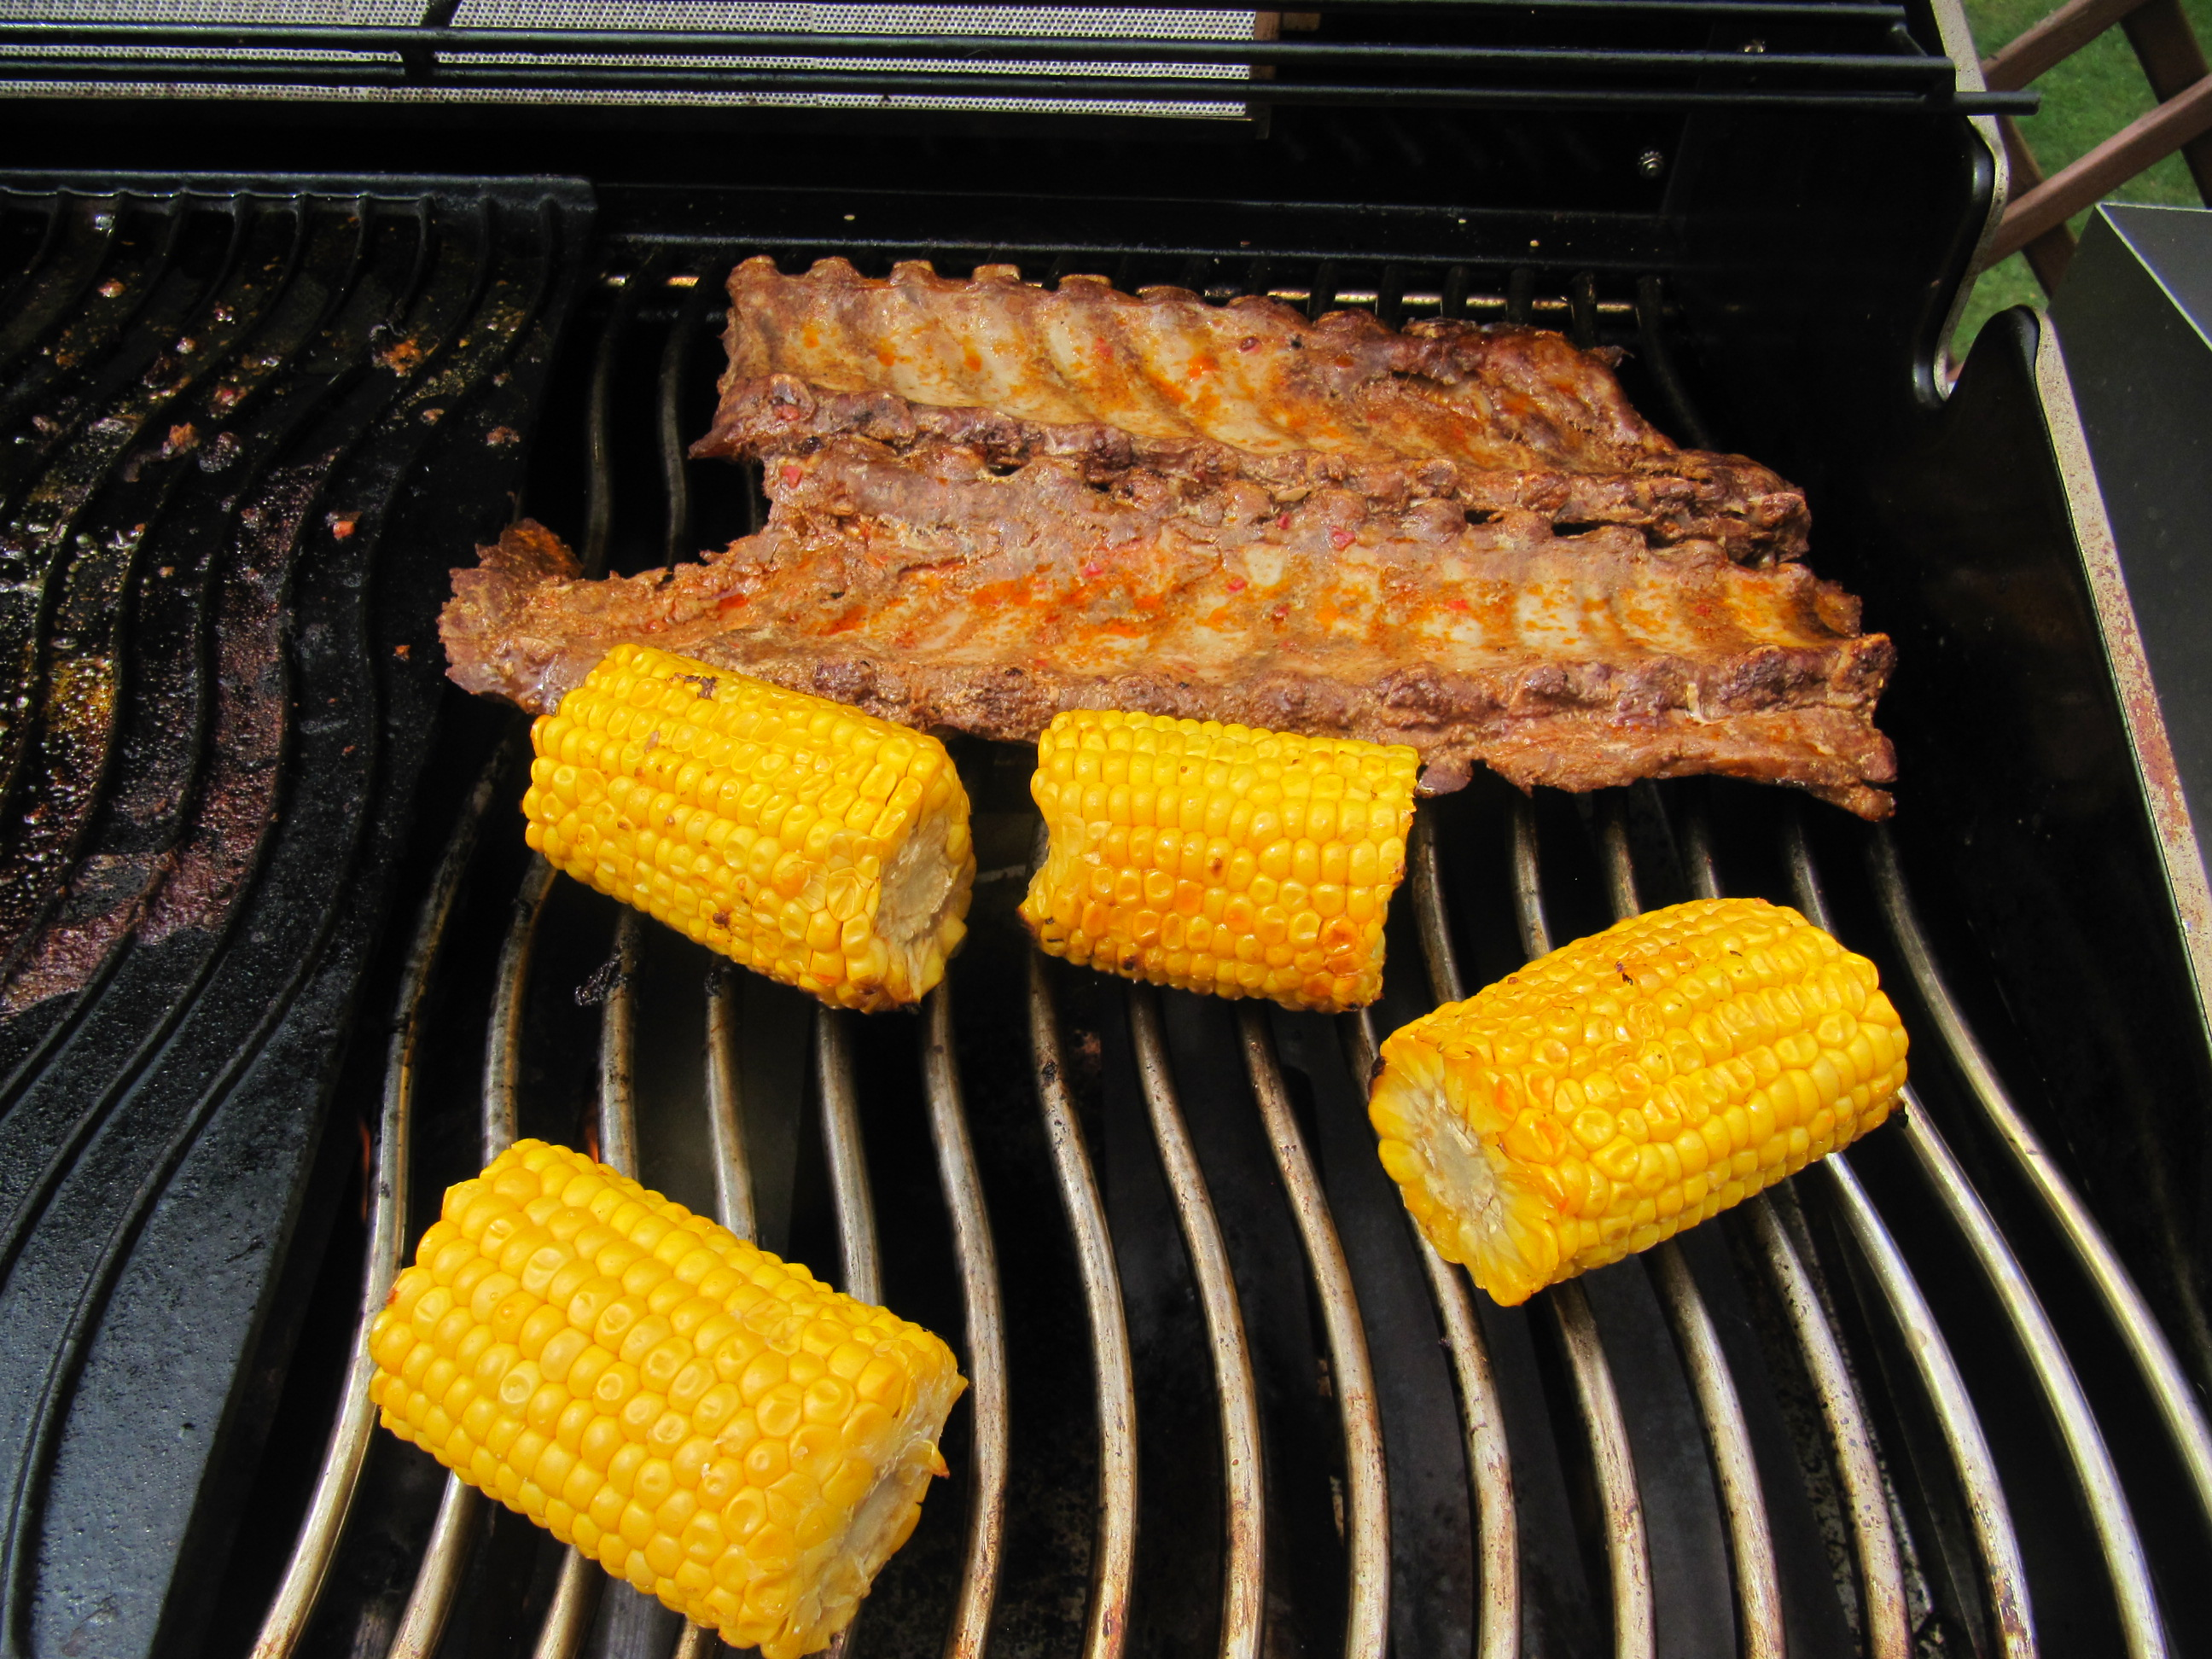 Vorgekochte Spareribs Gasgrill : Spare ribs low and slow cooked mit gegrilltem mais und potato wedges